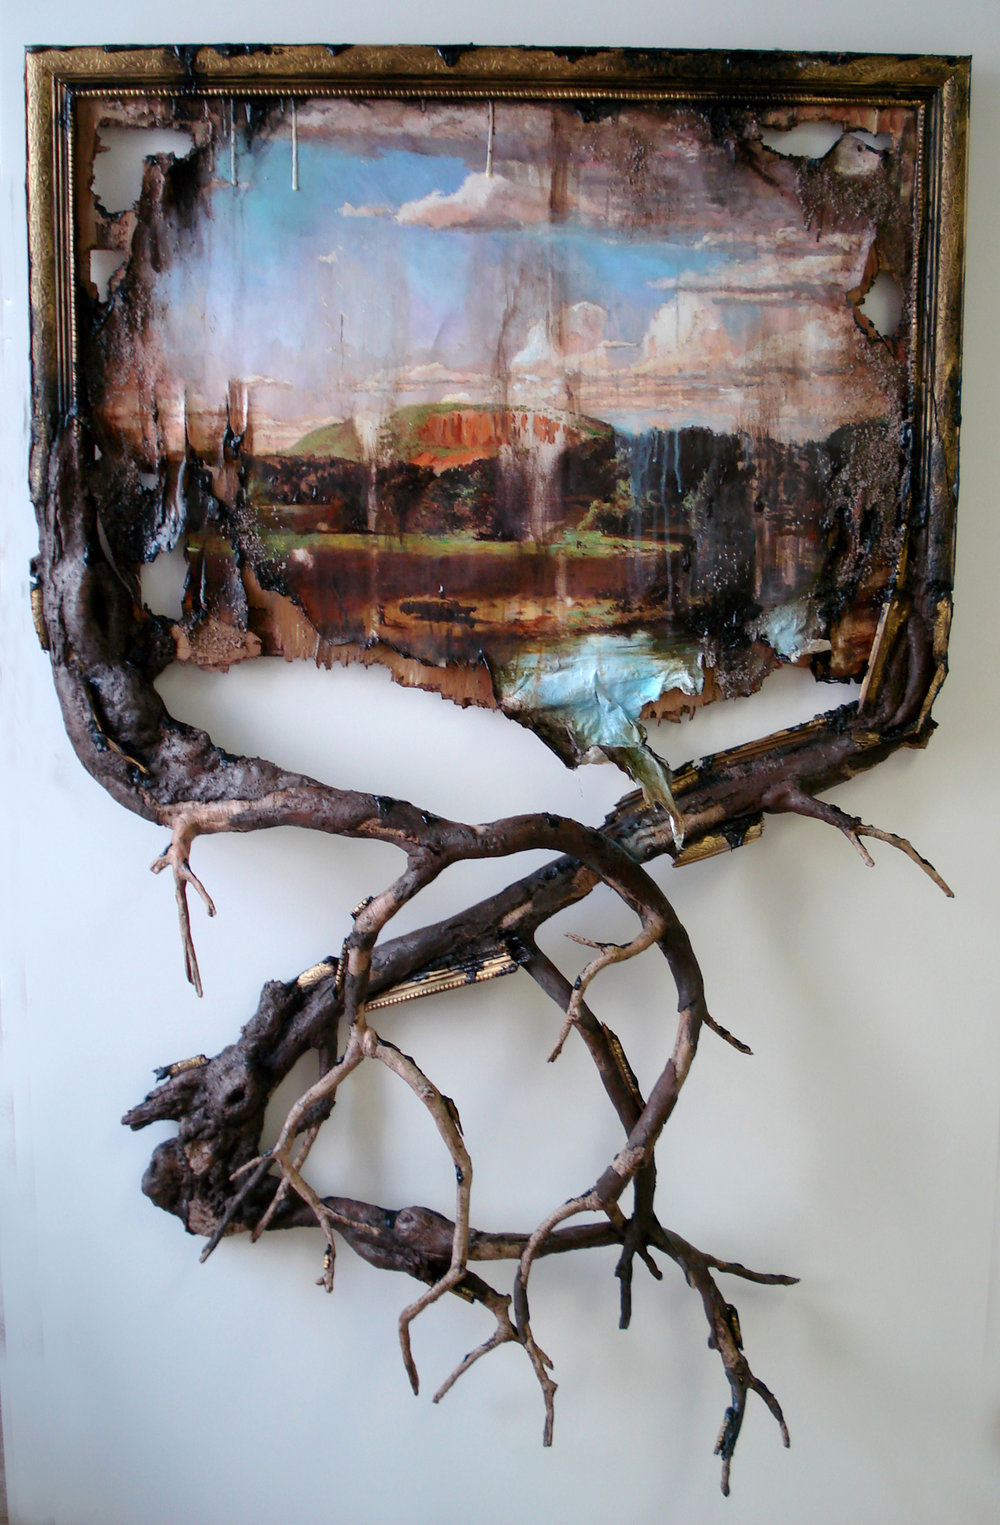 West Rock with Branches , wood, wire, epoxy, archival print on canvas, acrylic paint, gel mediums, sand, glue, hardware, 2012, Commission for: New Britain Museum of American Art